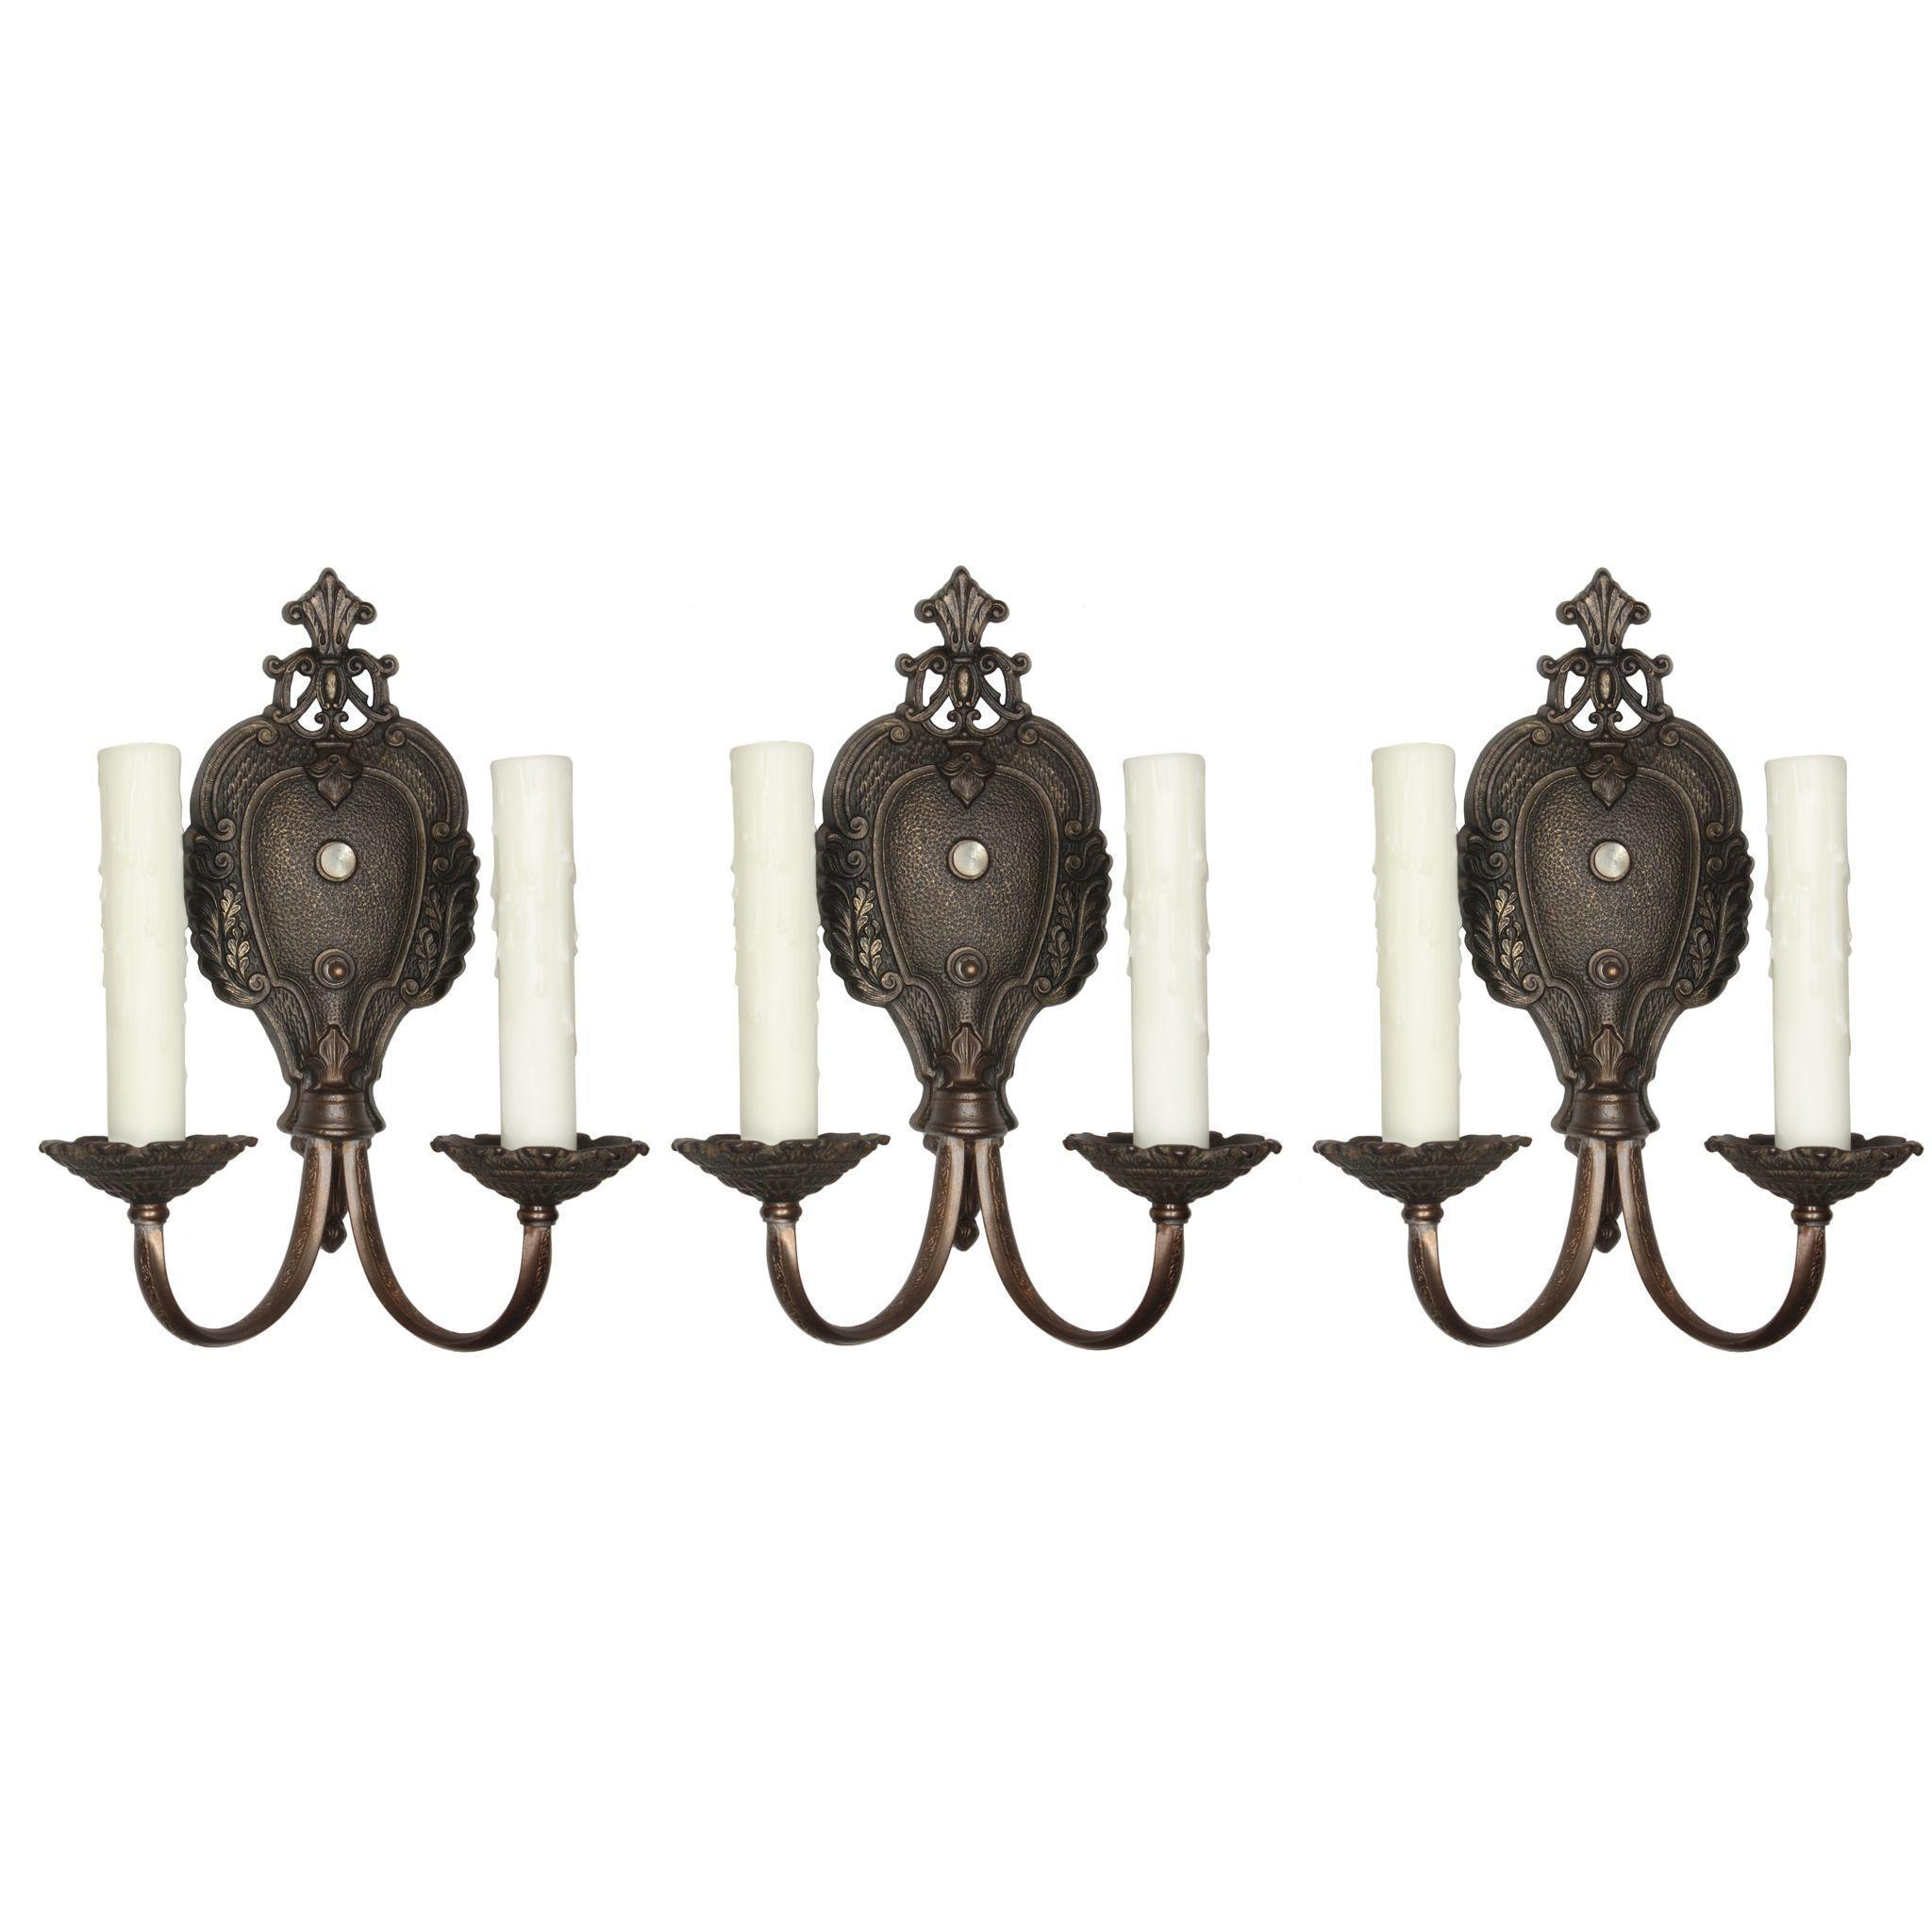 Antique Neoclassical Double-Arm Sconces by Markel